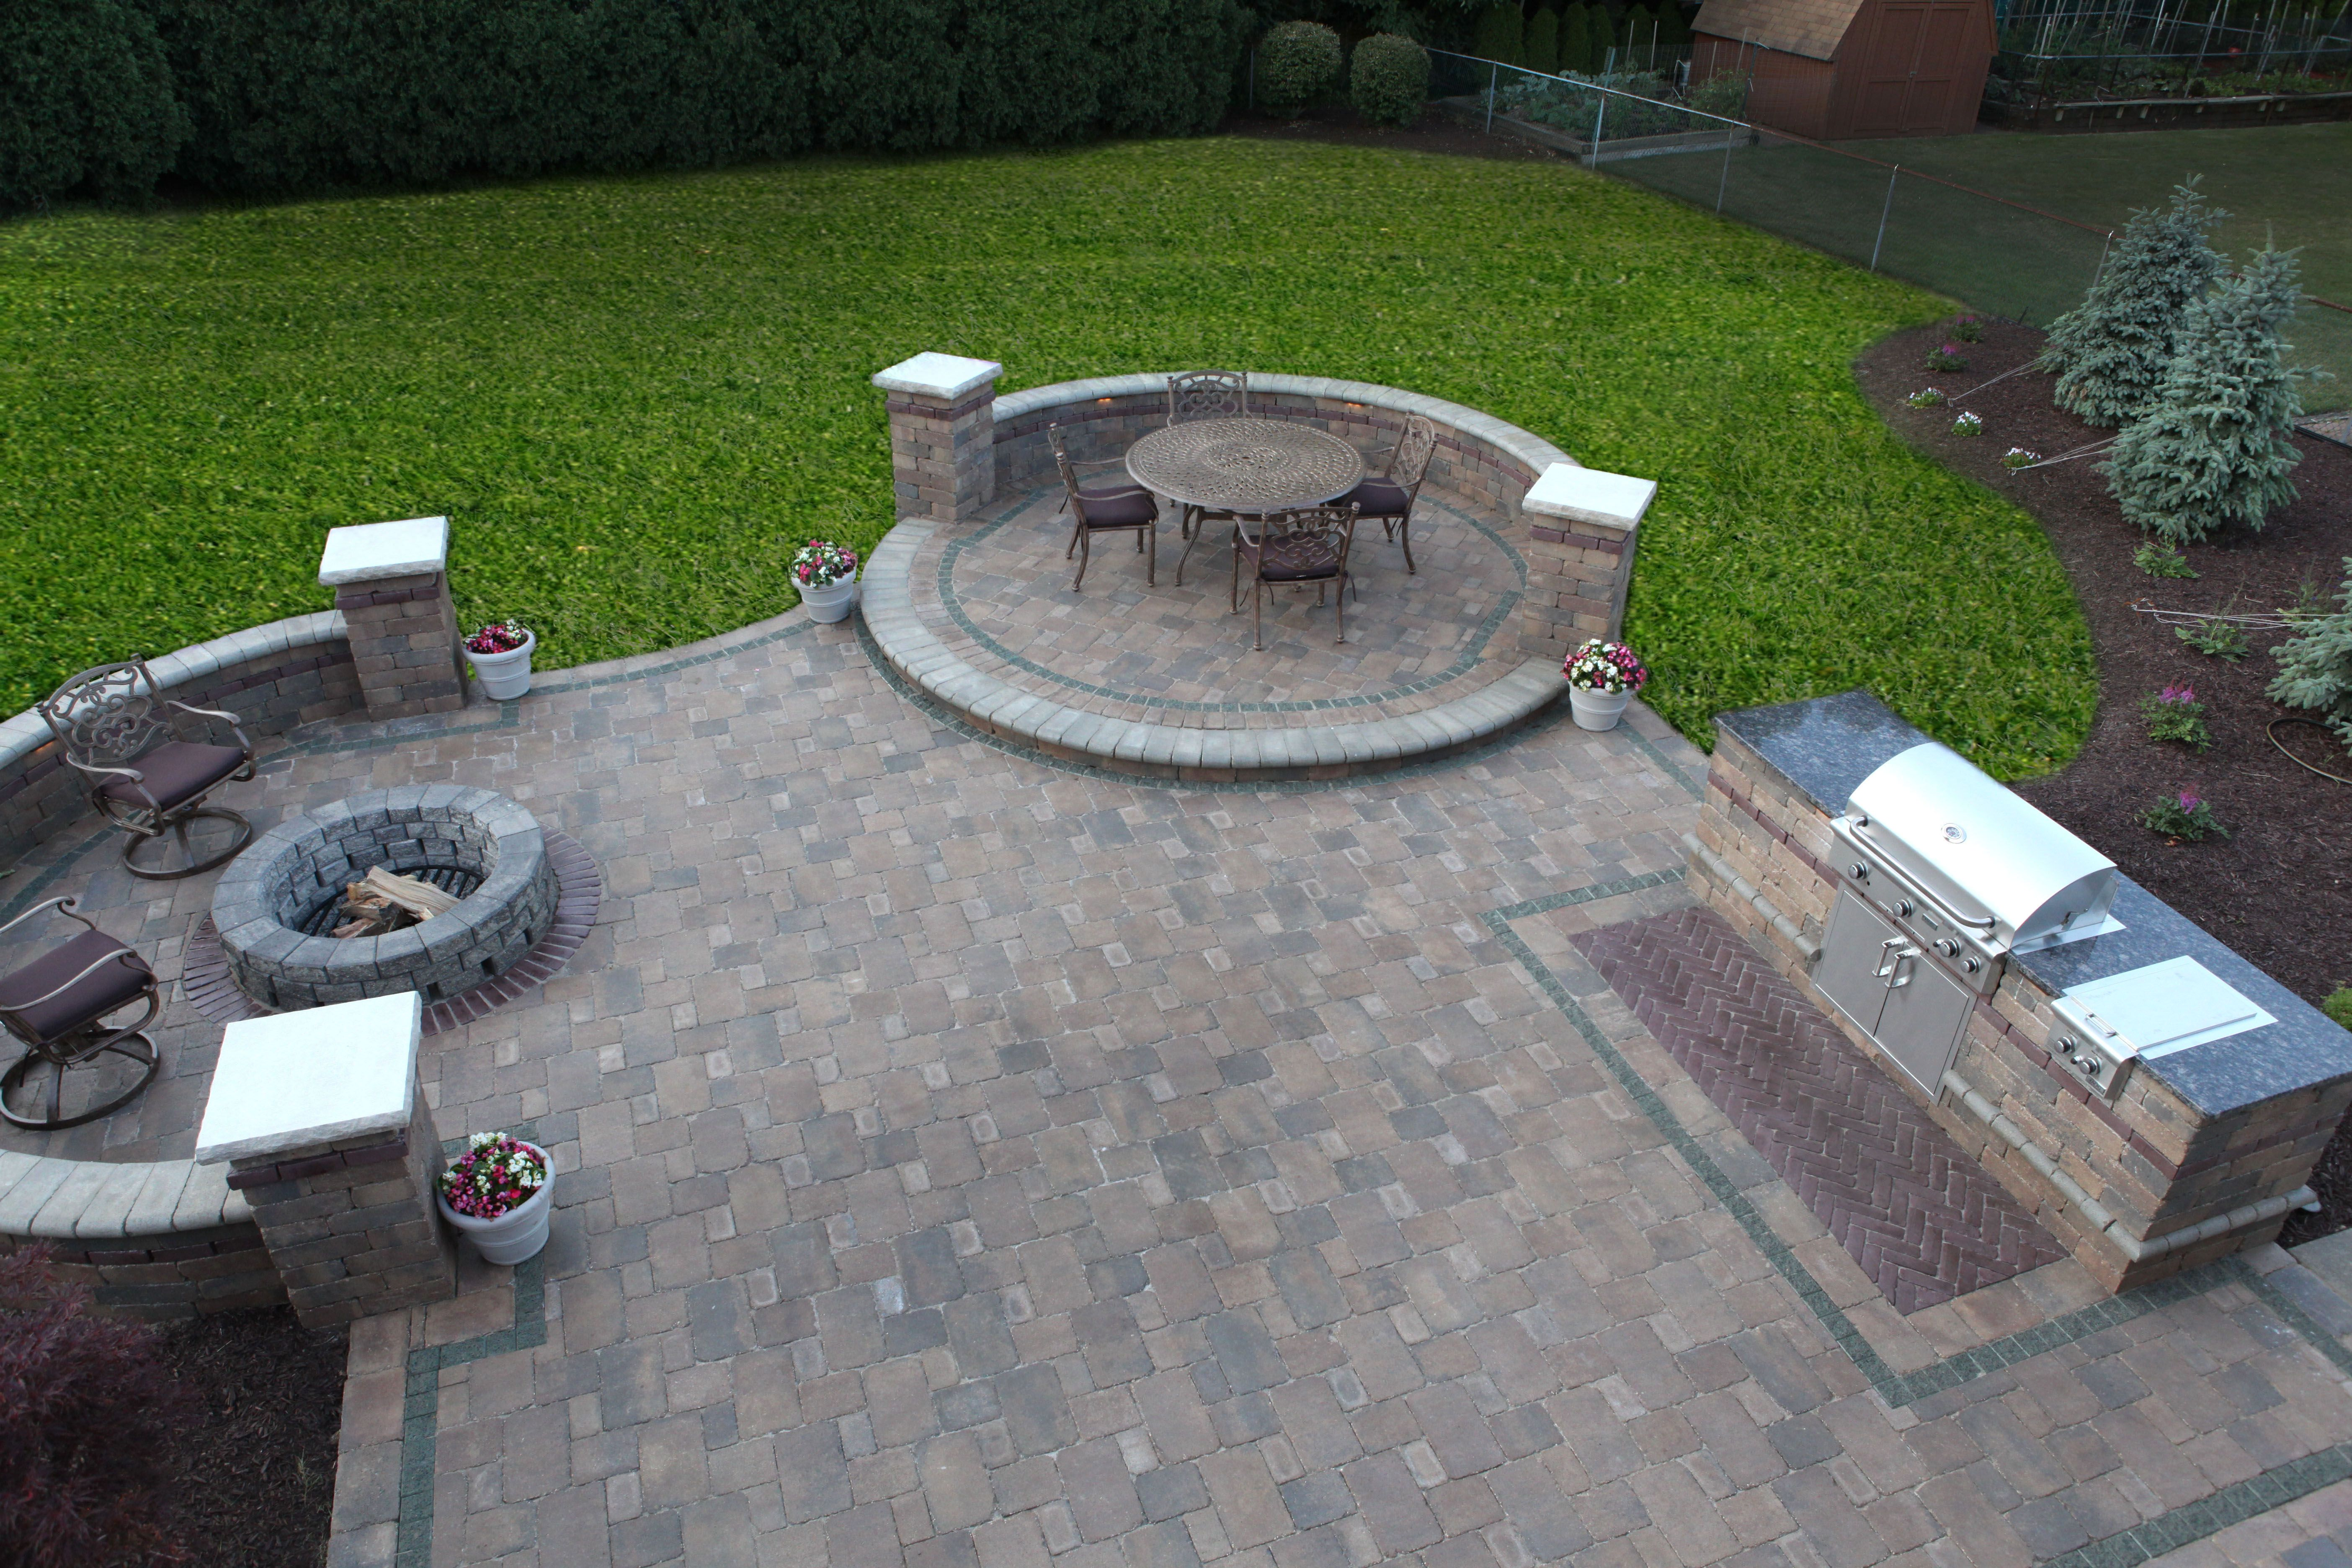 grill patio ideas 20 amazing backyard ideas that wont break the bank page 17 of 20 - Outdoor Patios Ideas